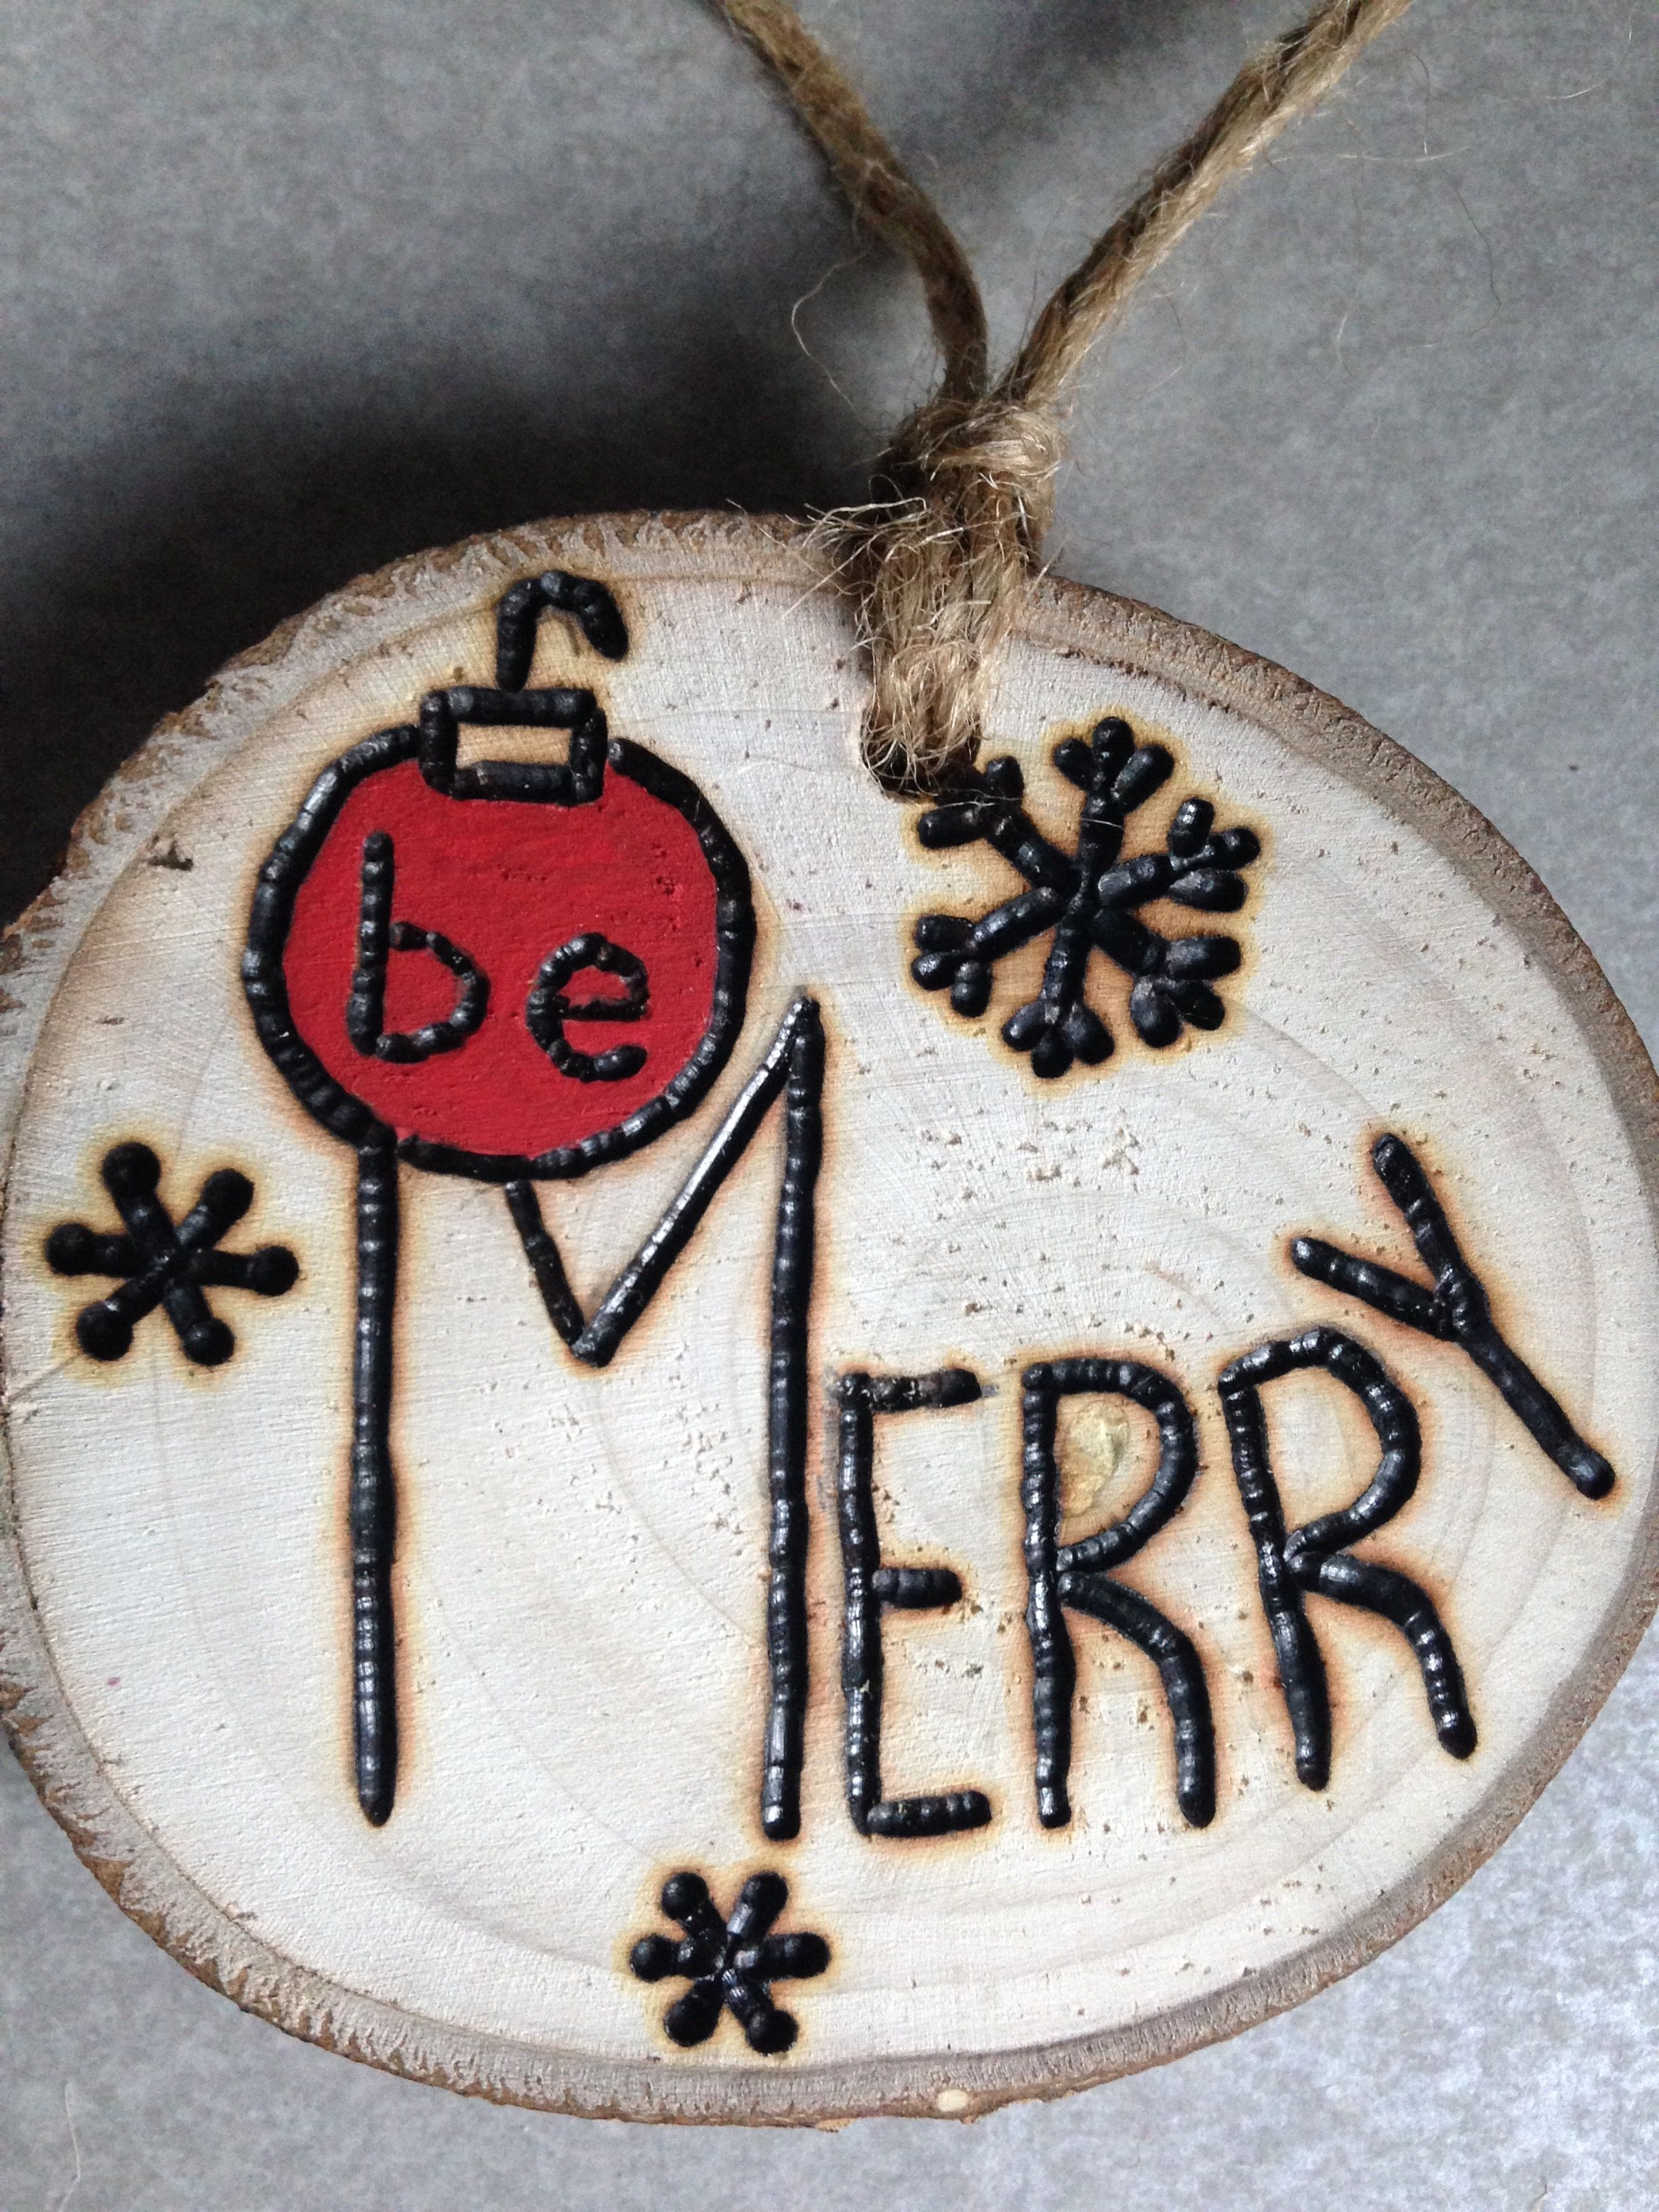 Rustic Hand Painted Be Merry Wood Burned Christmas Ornament Natural Wood Wooden Christmas Ornaments Wood Christmas Ornaments Christmas Ornaments Homemade